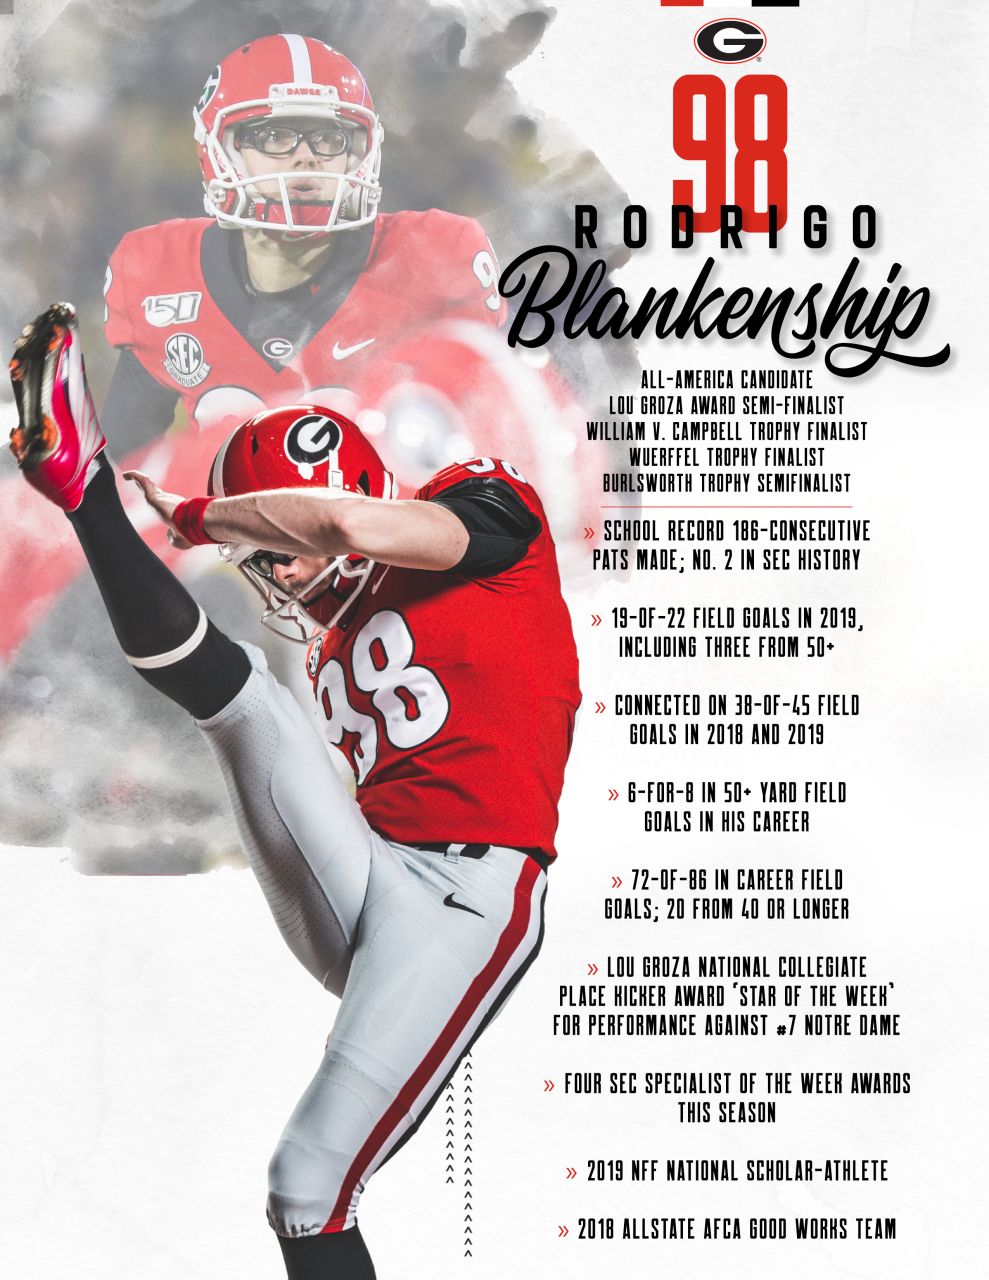 Pin By Becky Wortham On Dawgs In 2020 Georgia Football Georgia Bulldogs Football Georgia Dawgs